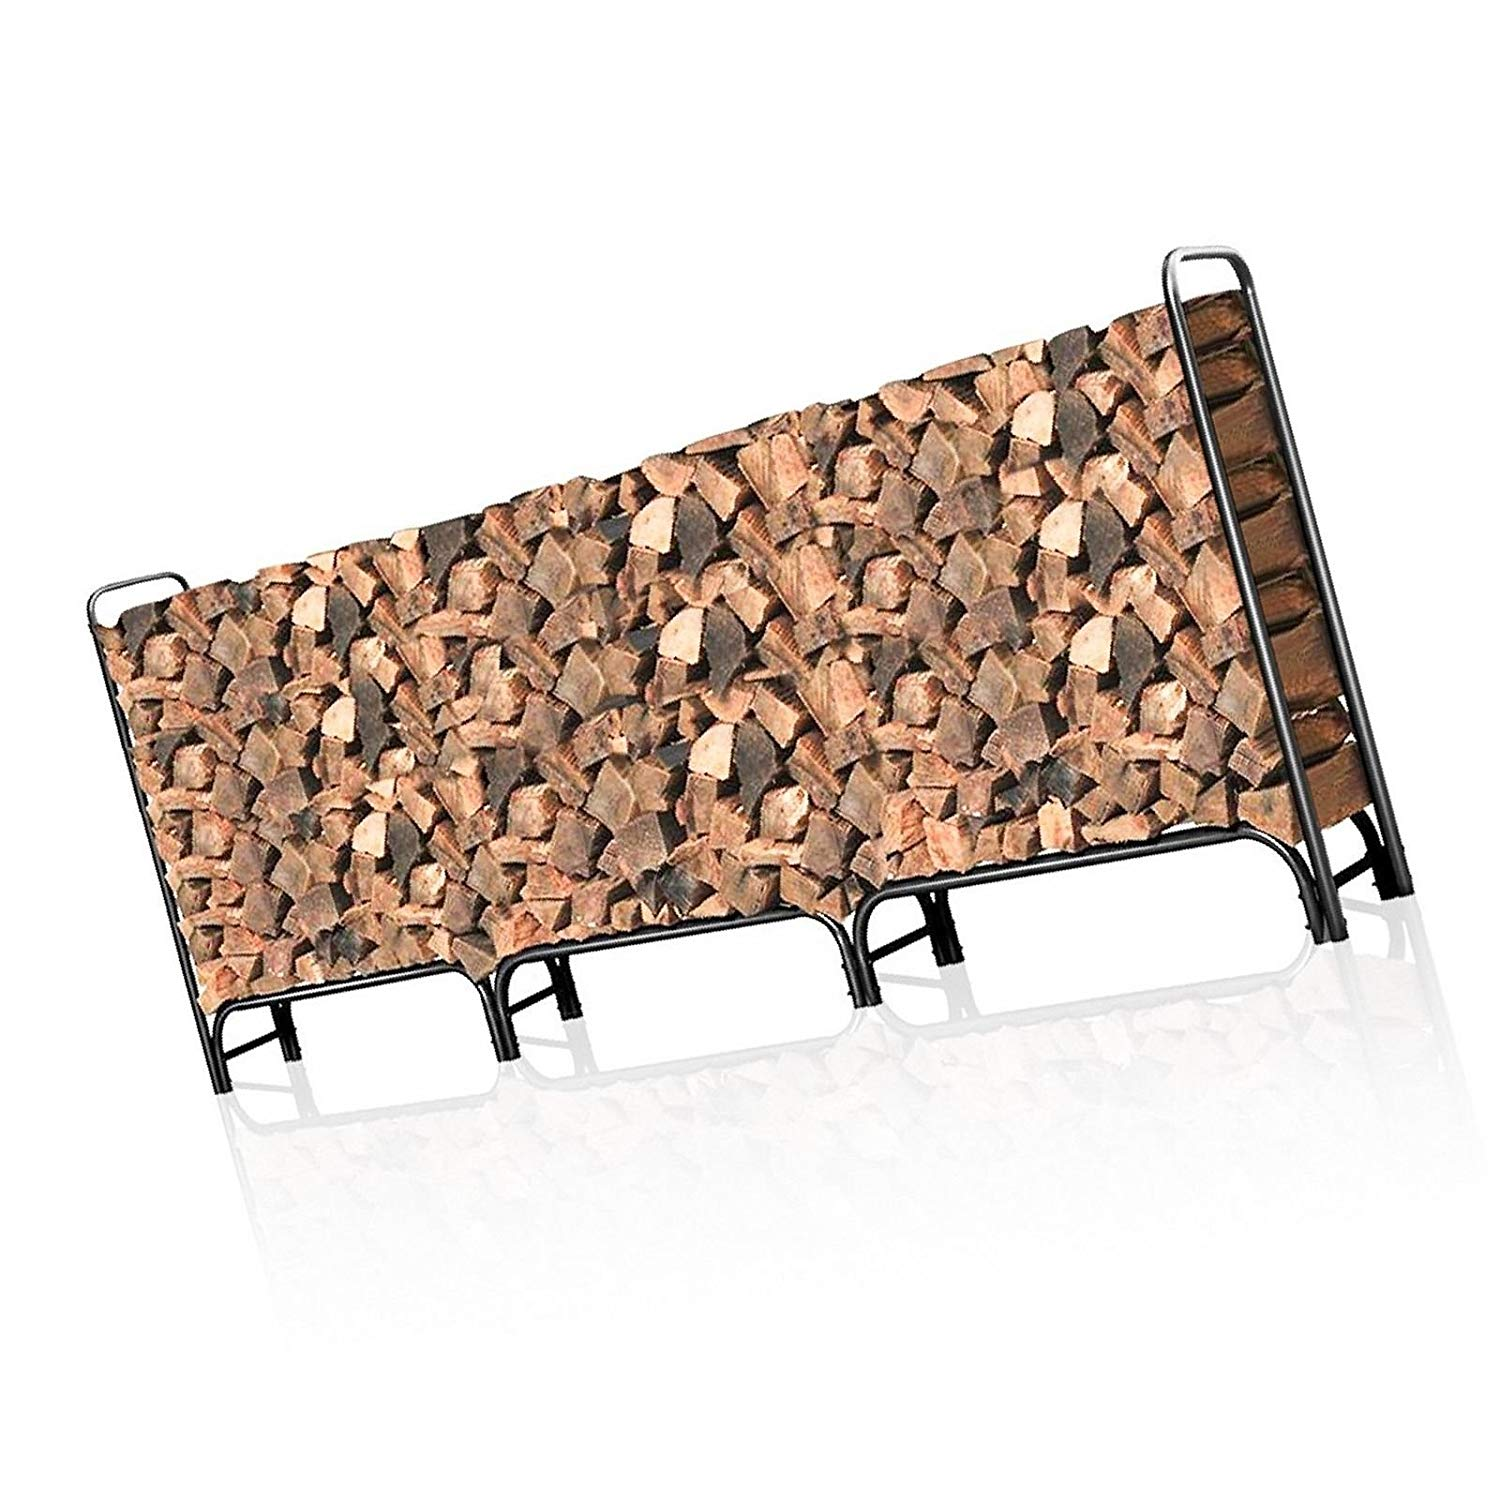 Moon_Daughter Farmhouse 12ft Storage Log Rack Firewood Pile Heavy Duty Firewood for Fireplace Outdoor Barn